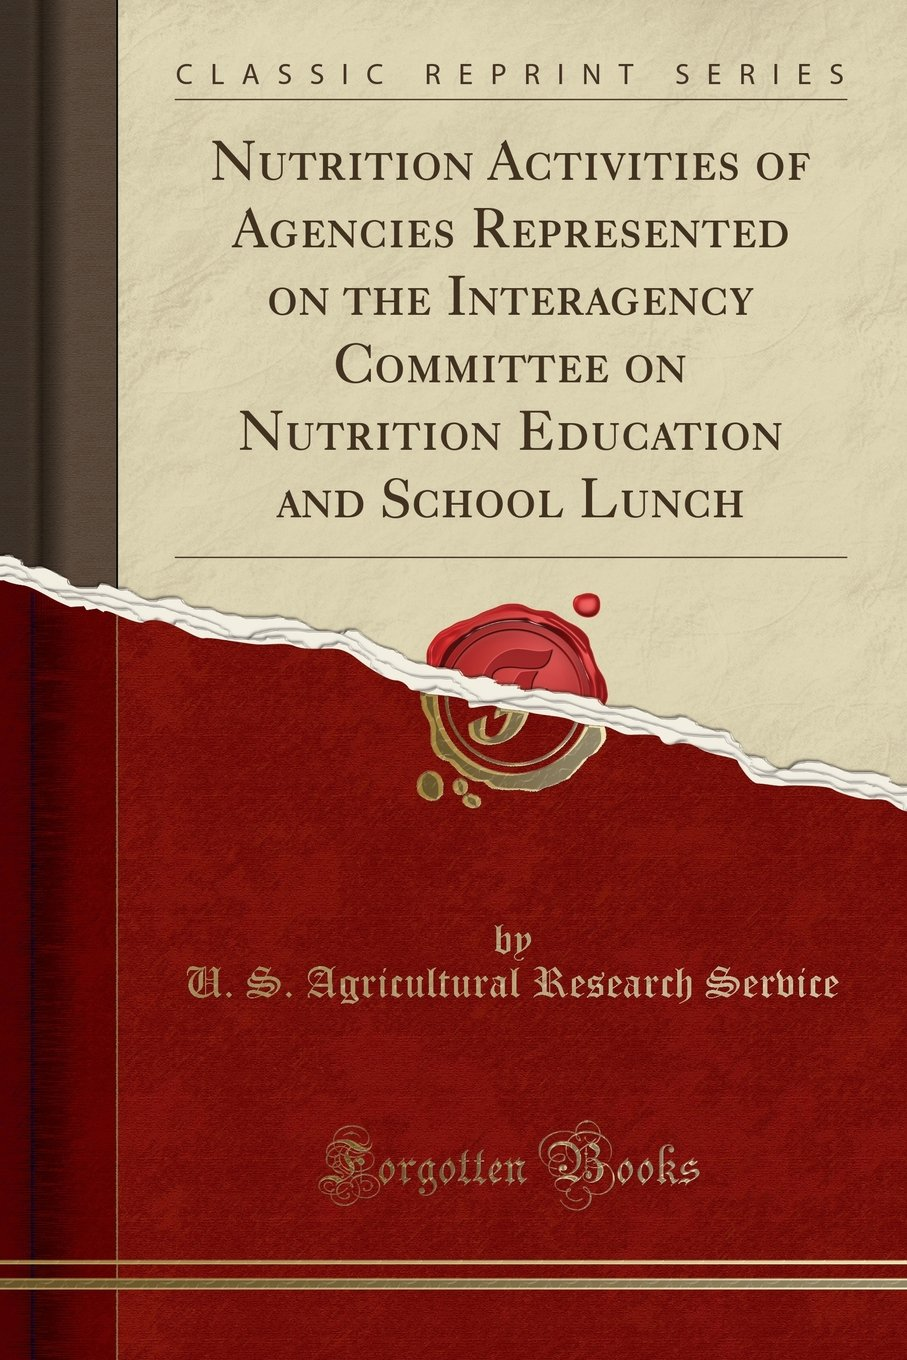 Nutrition Activities of Agencies Represented on the Interagency Committee on Nutrition Education and School Lunch (Classic Reprint) ebook